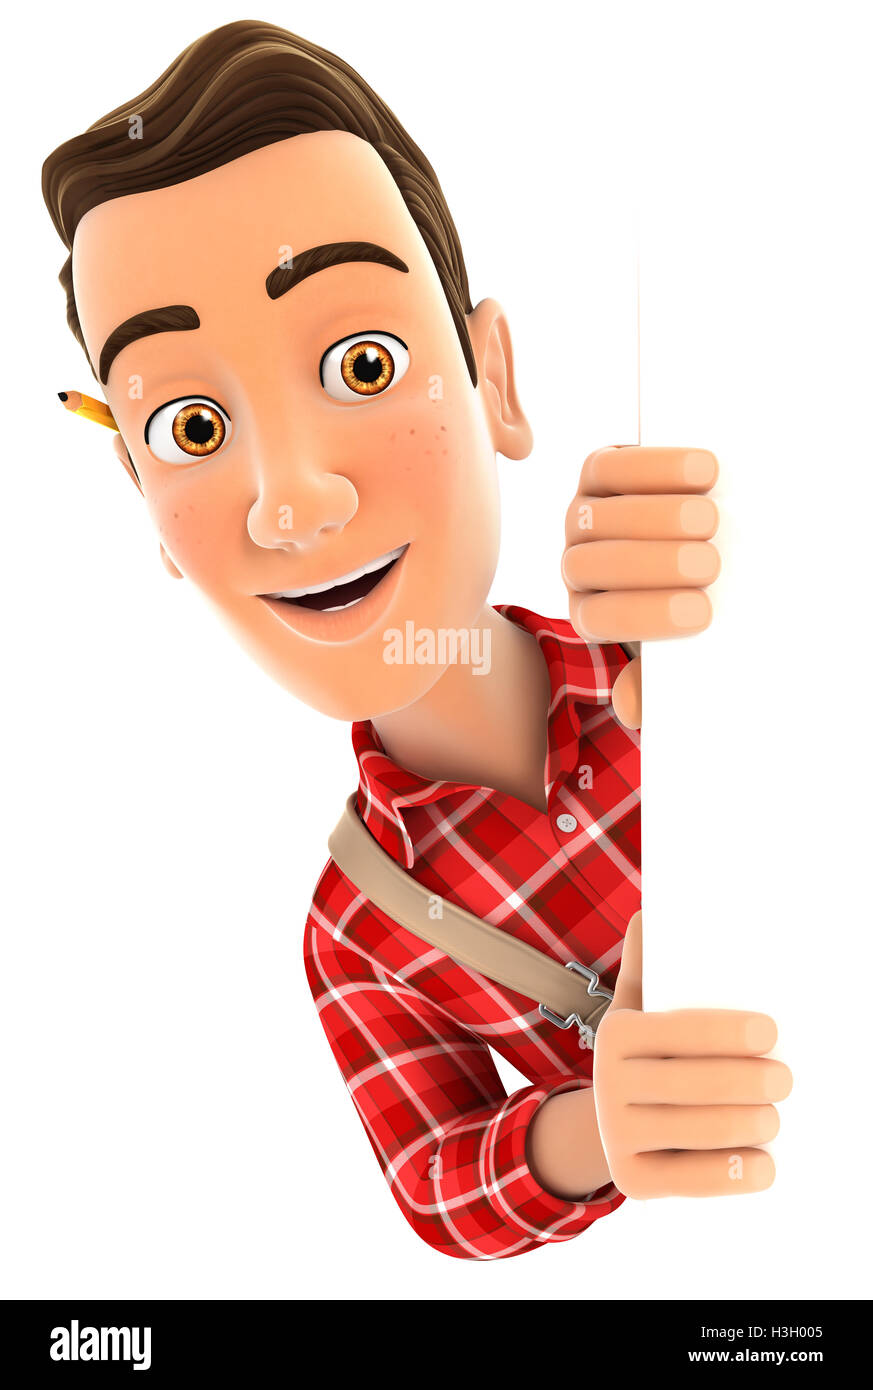 3d handyman peeping over blank wall, illustration with isolated white background Stock Photo